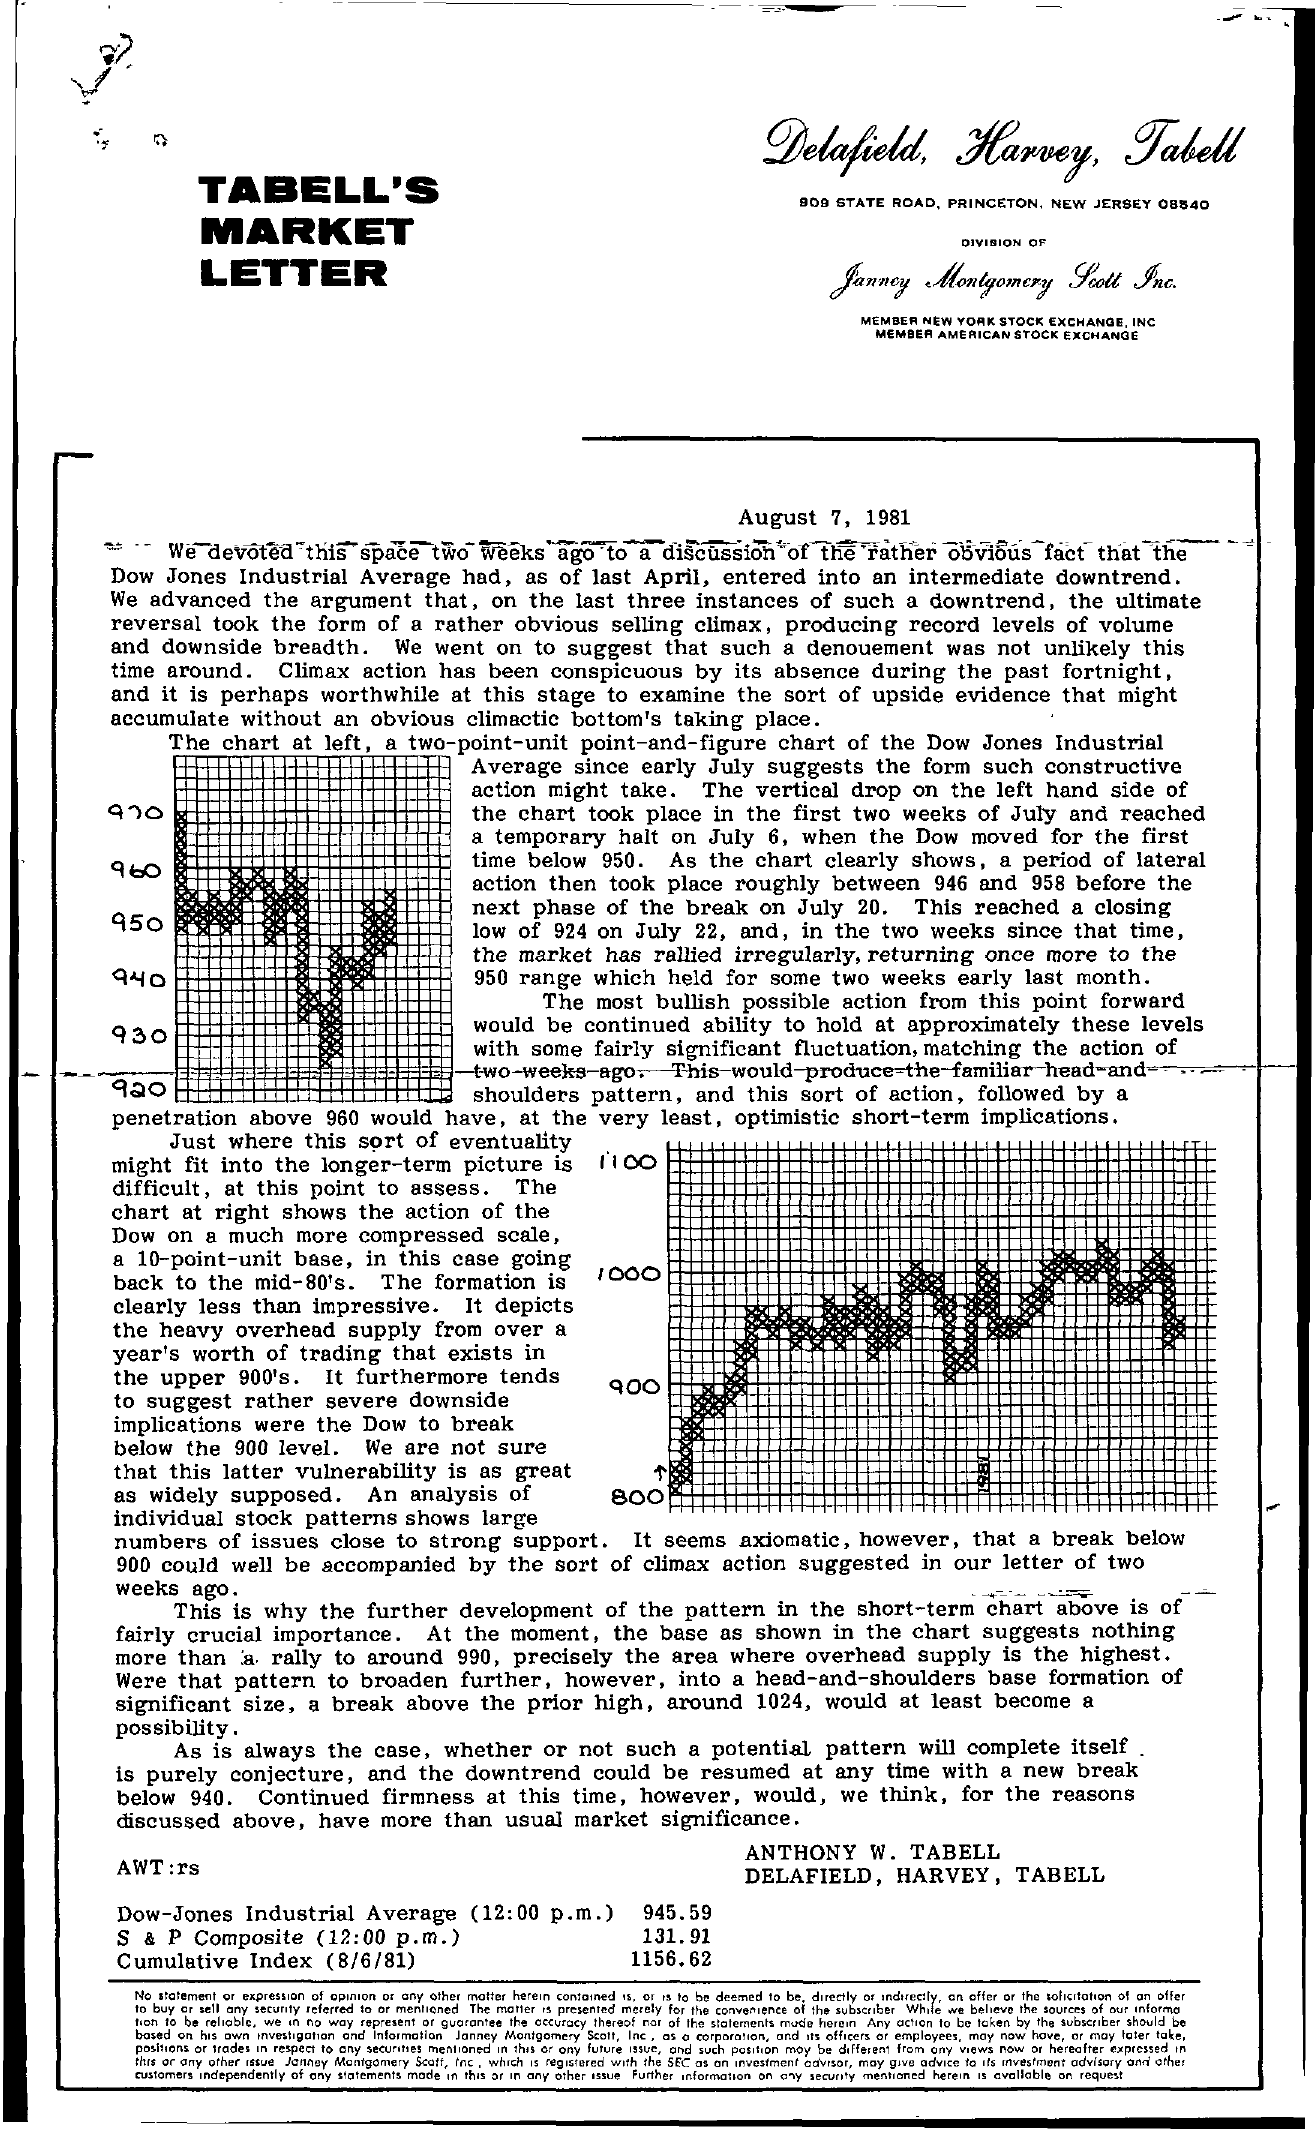 Tabell's Market Letter - August 07, 1981